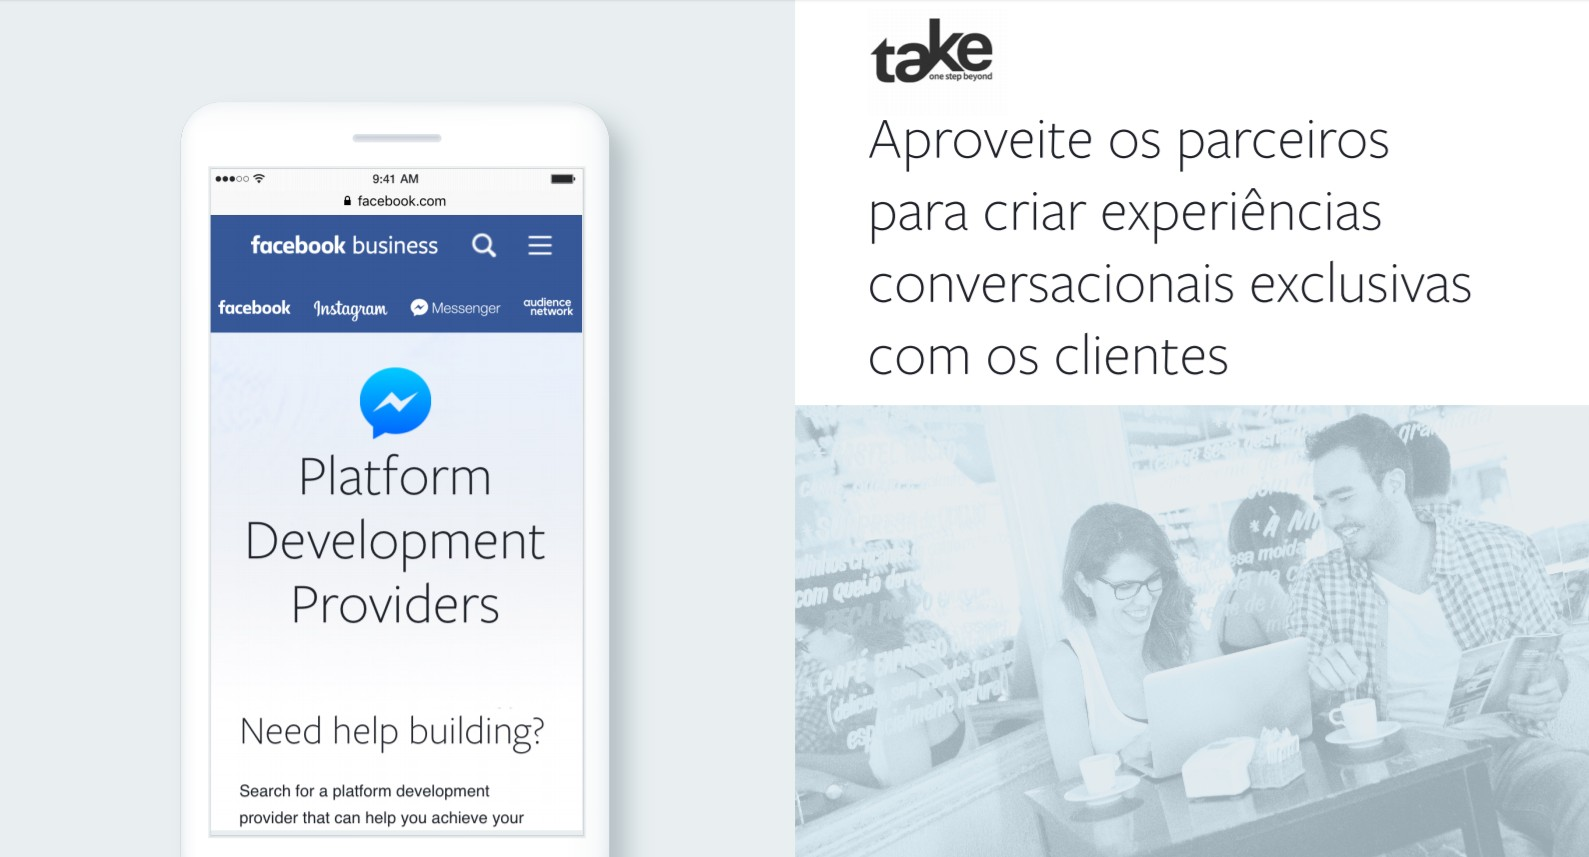 messenger e take post bots4u